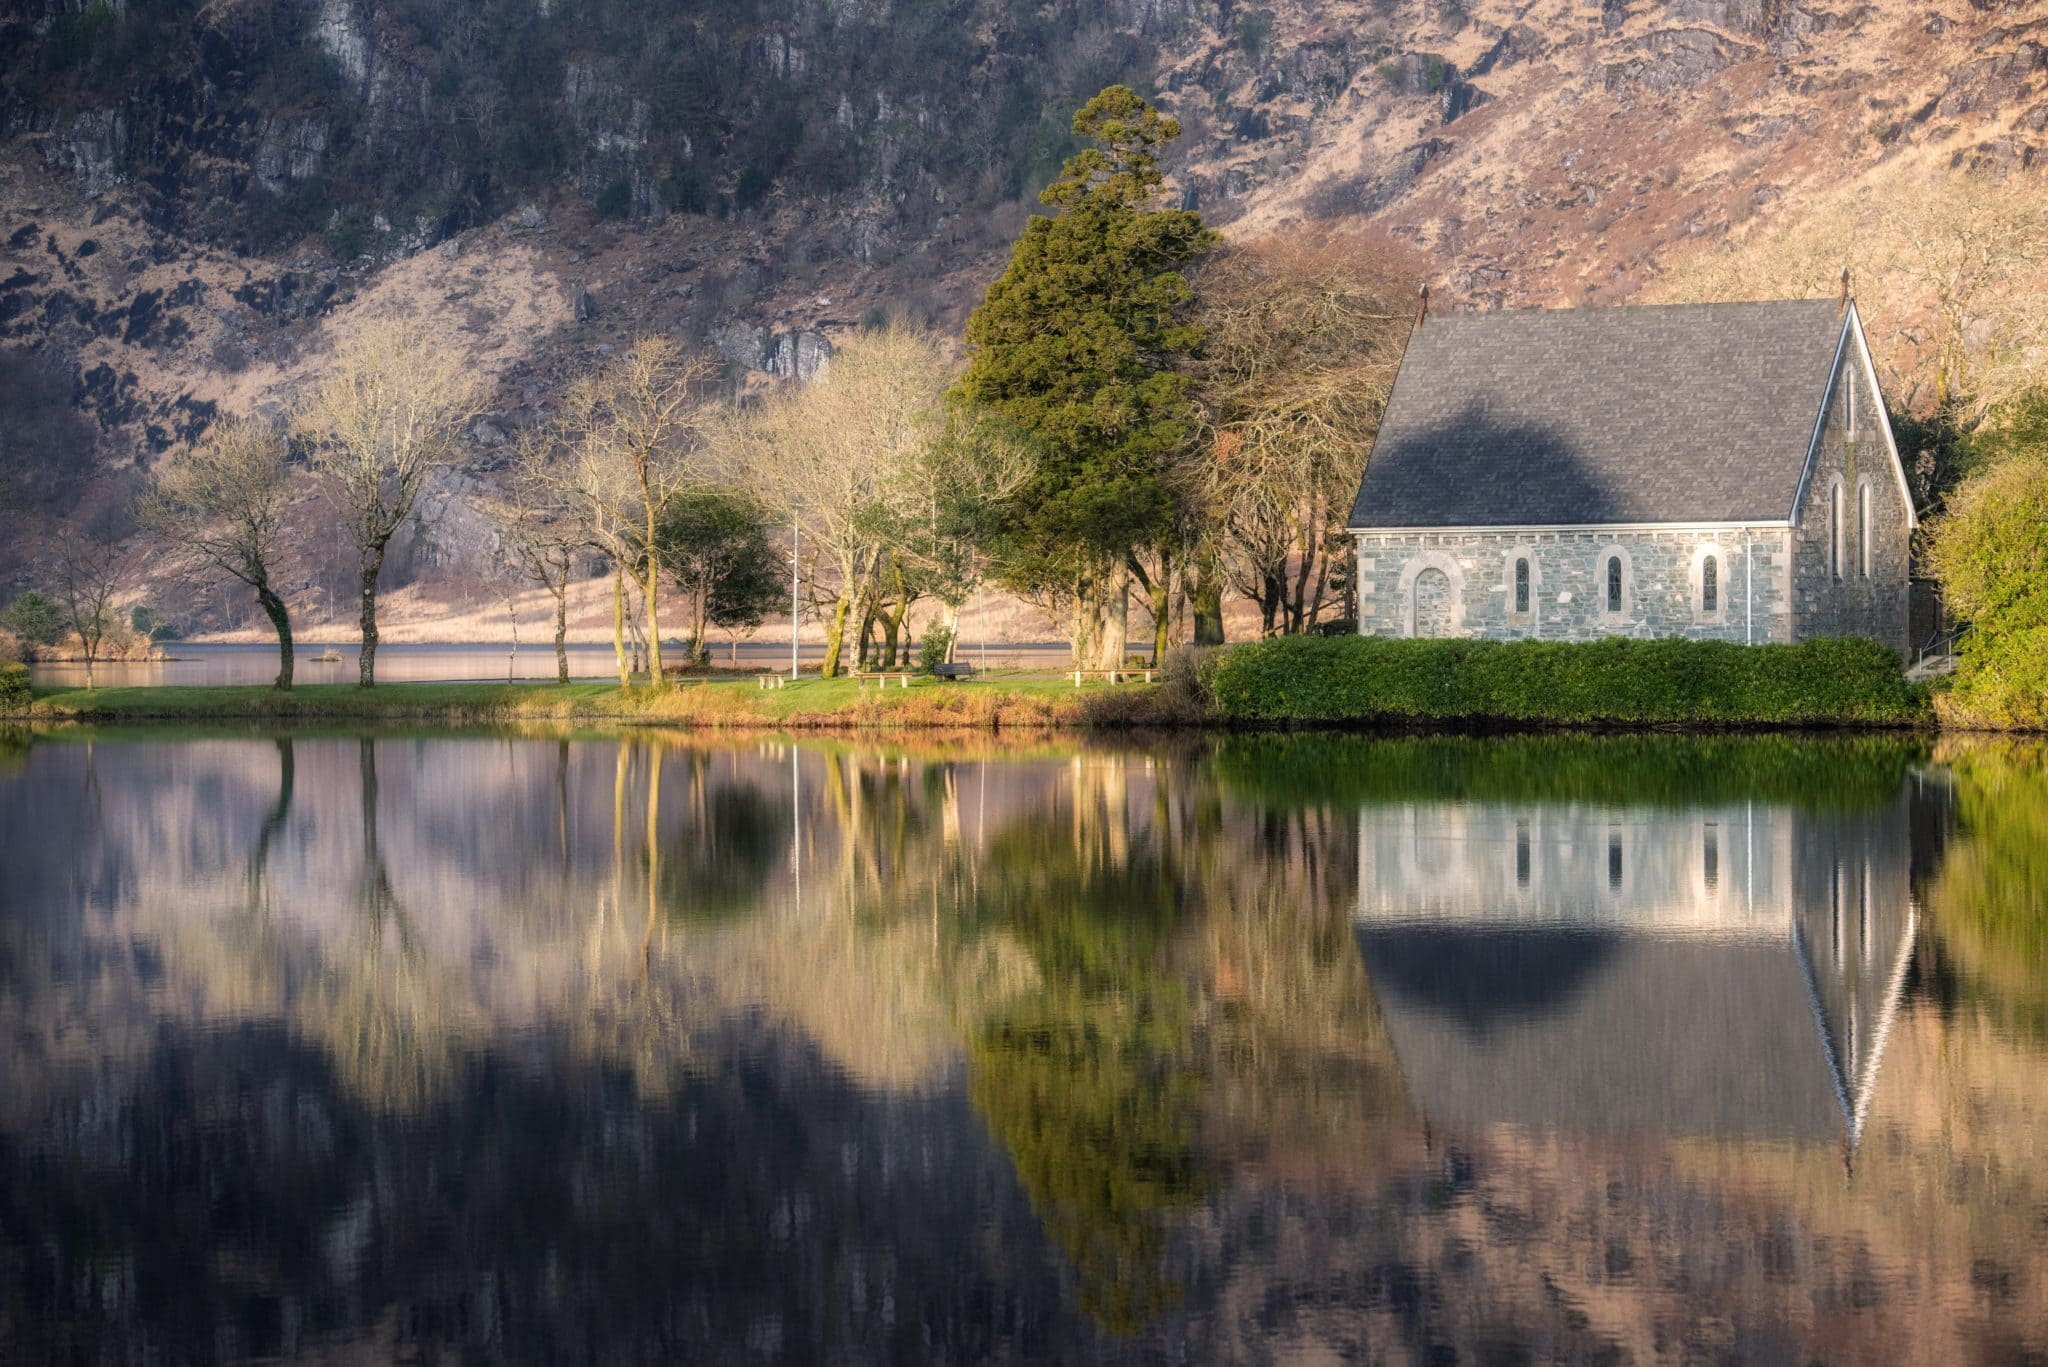 want to get married in Ireland? A tiny church Gougane Barra in Ireland